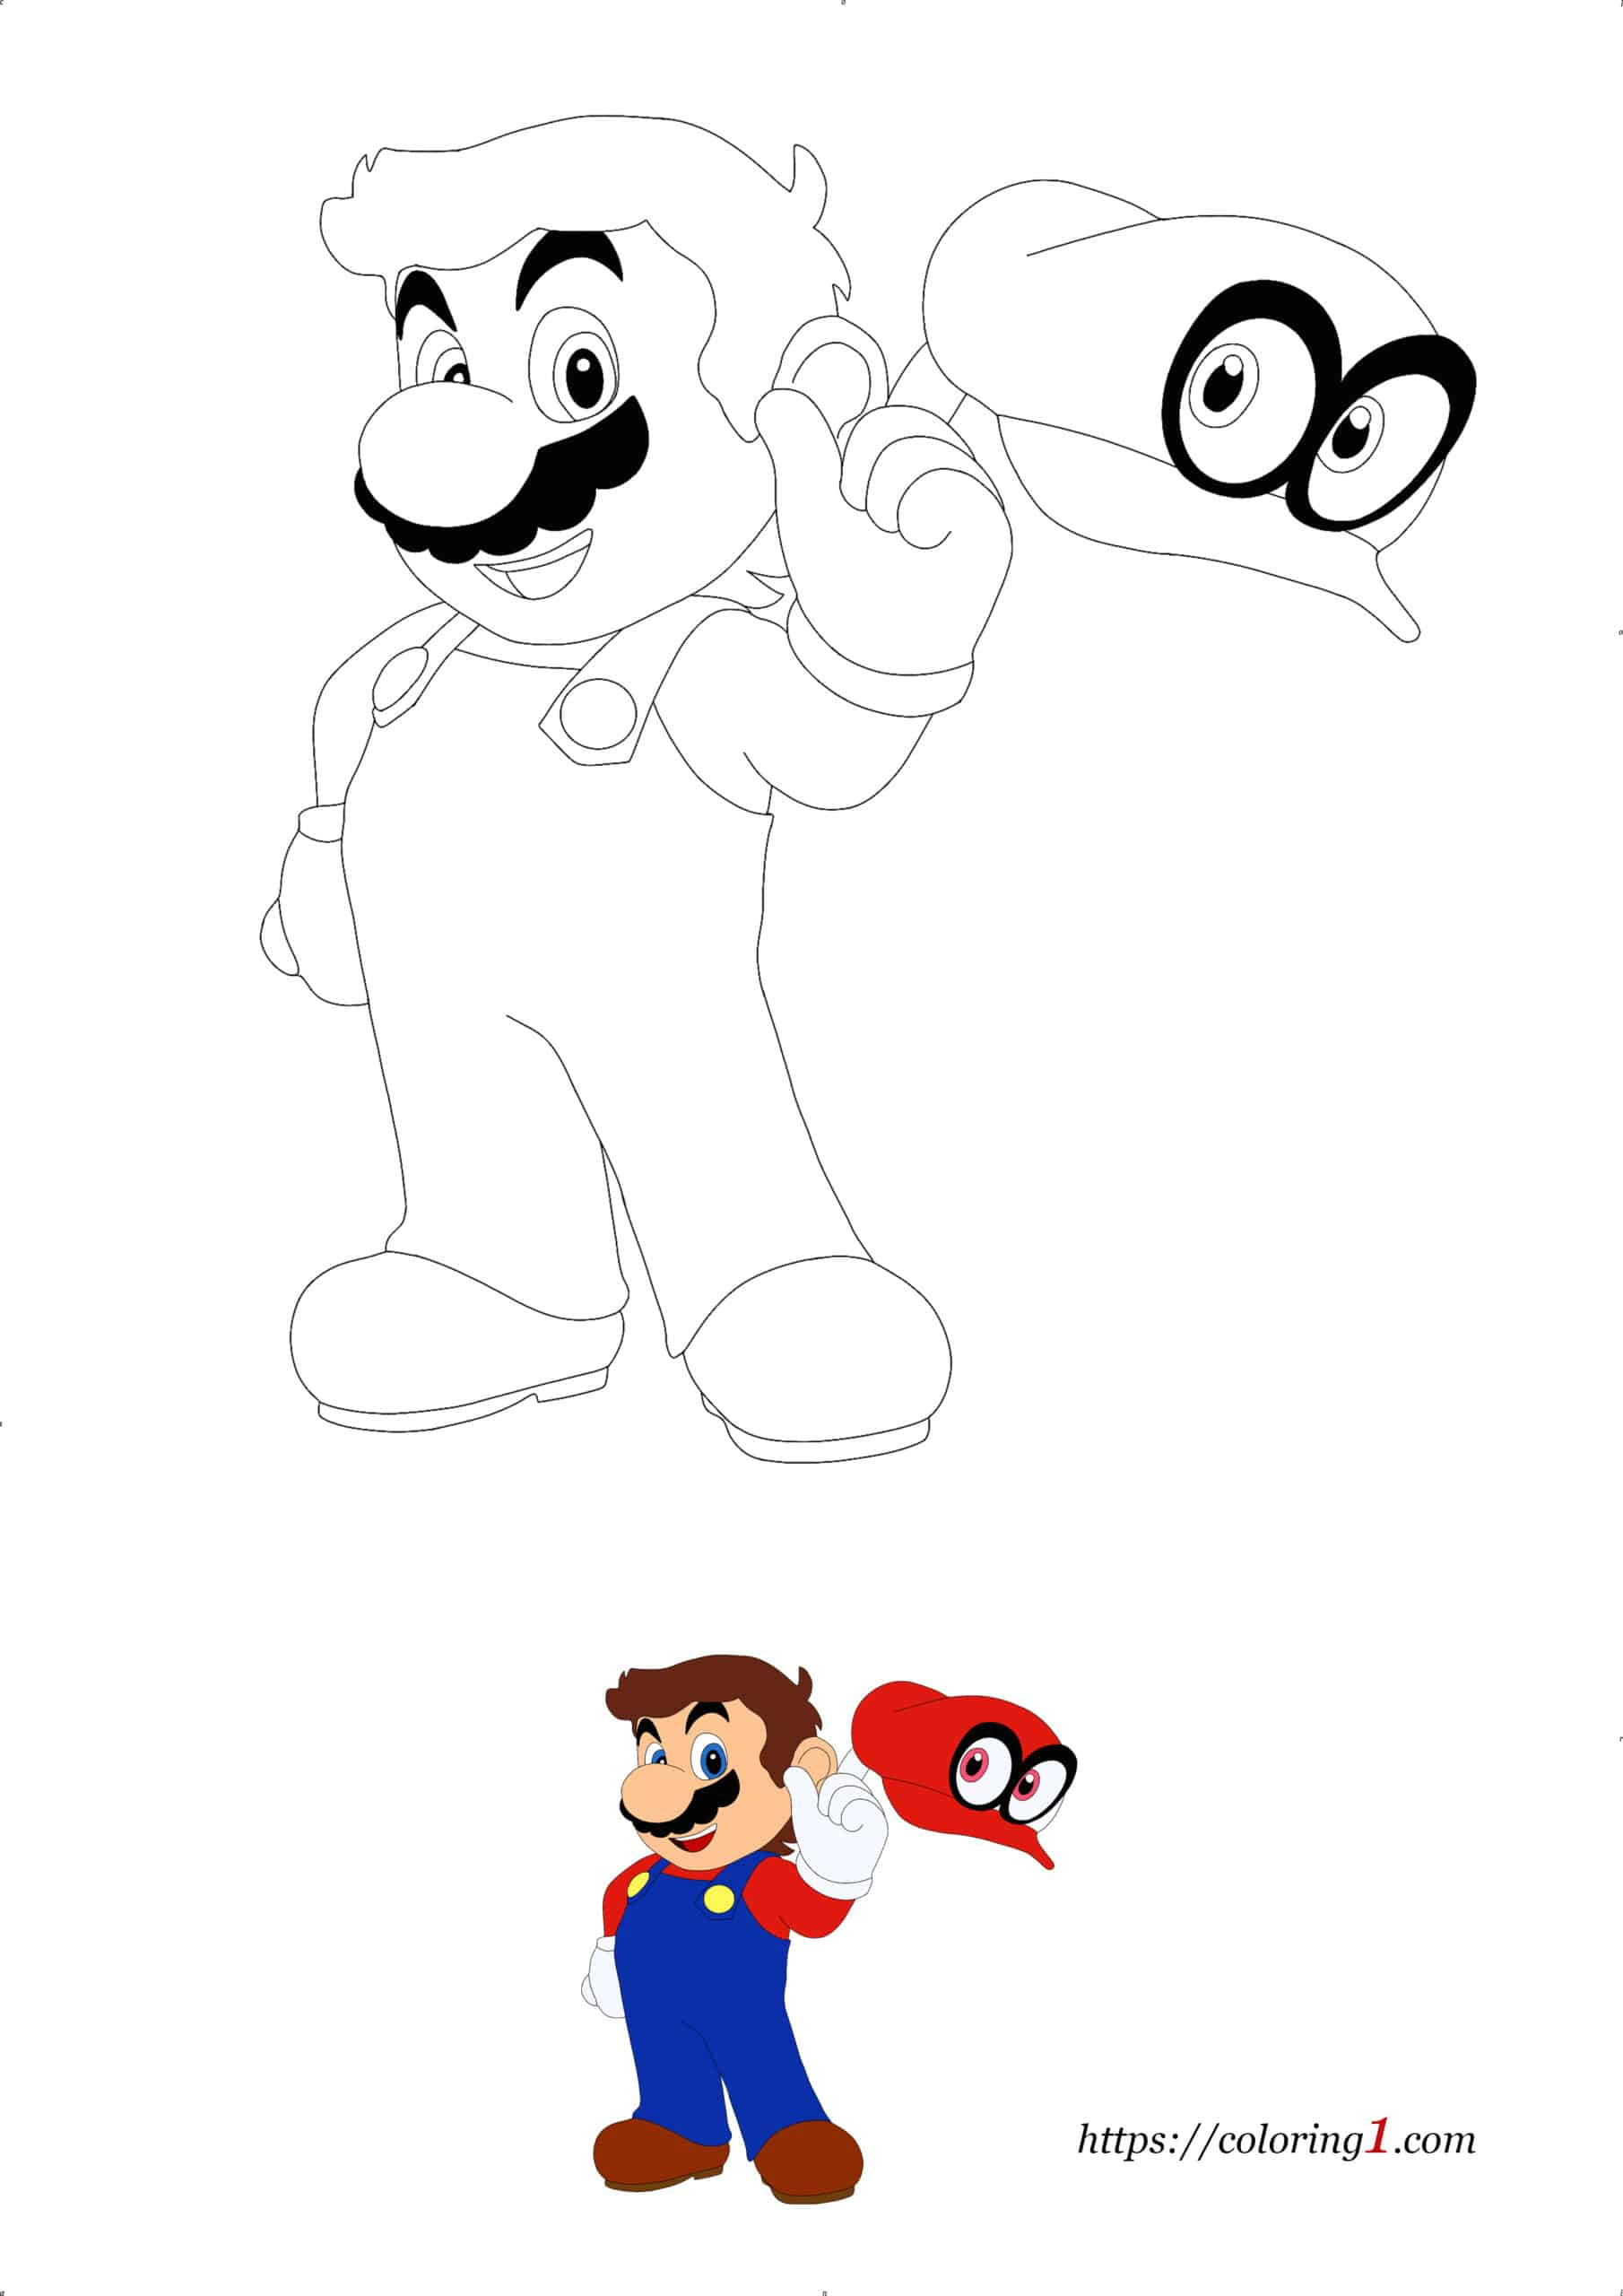 Super Mario Odyssey coloring book page for girls and boys